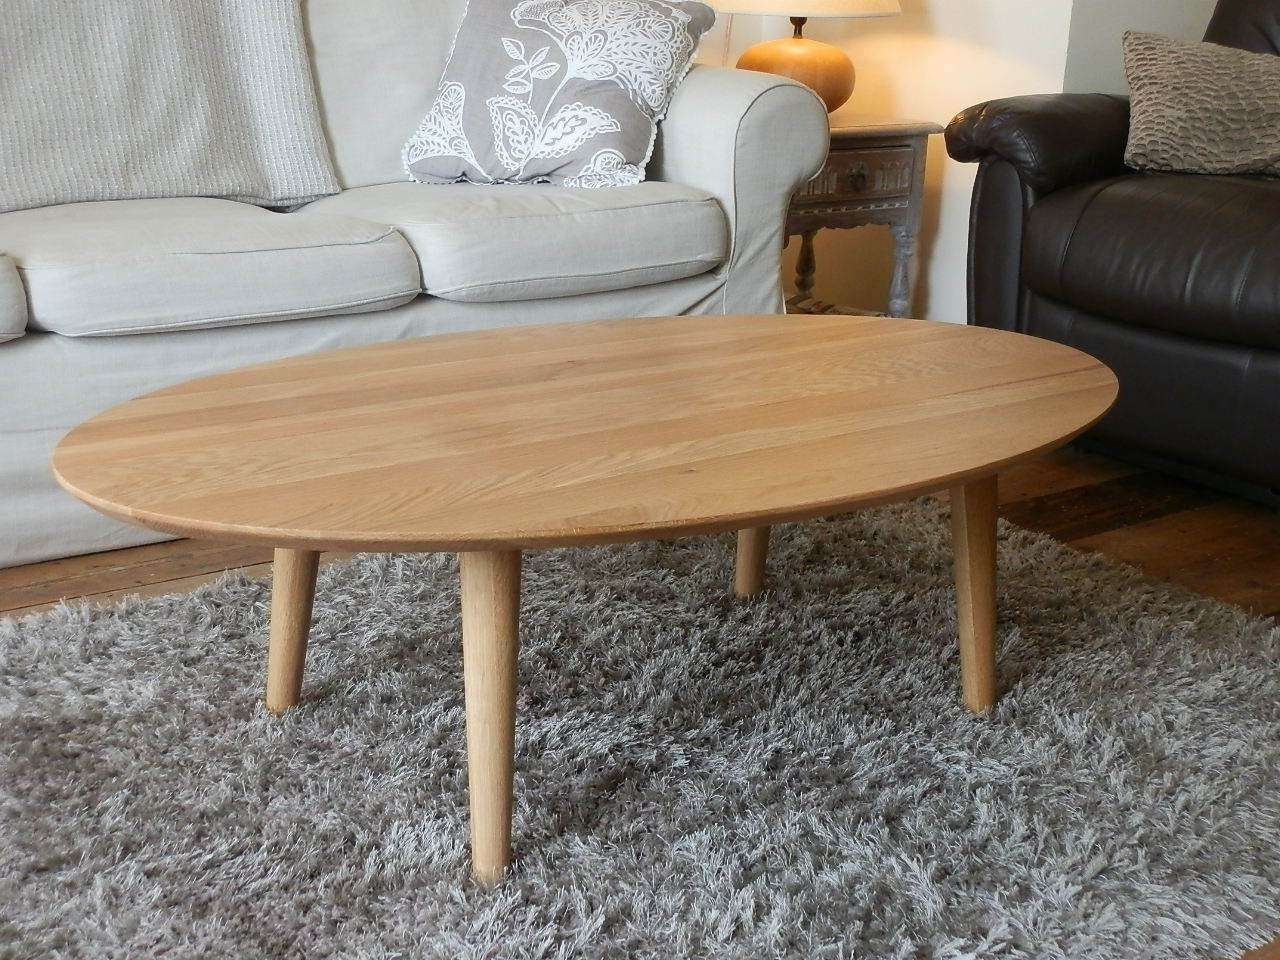 Oak Oval Coffee Table White — The Home Redesign : What Kind Of For Best And Newest White Oval Coffee Tables (View 3 of 20)